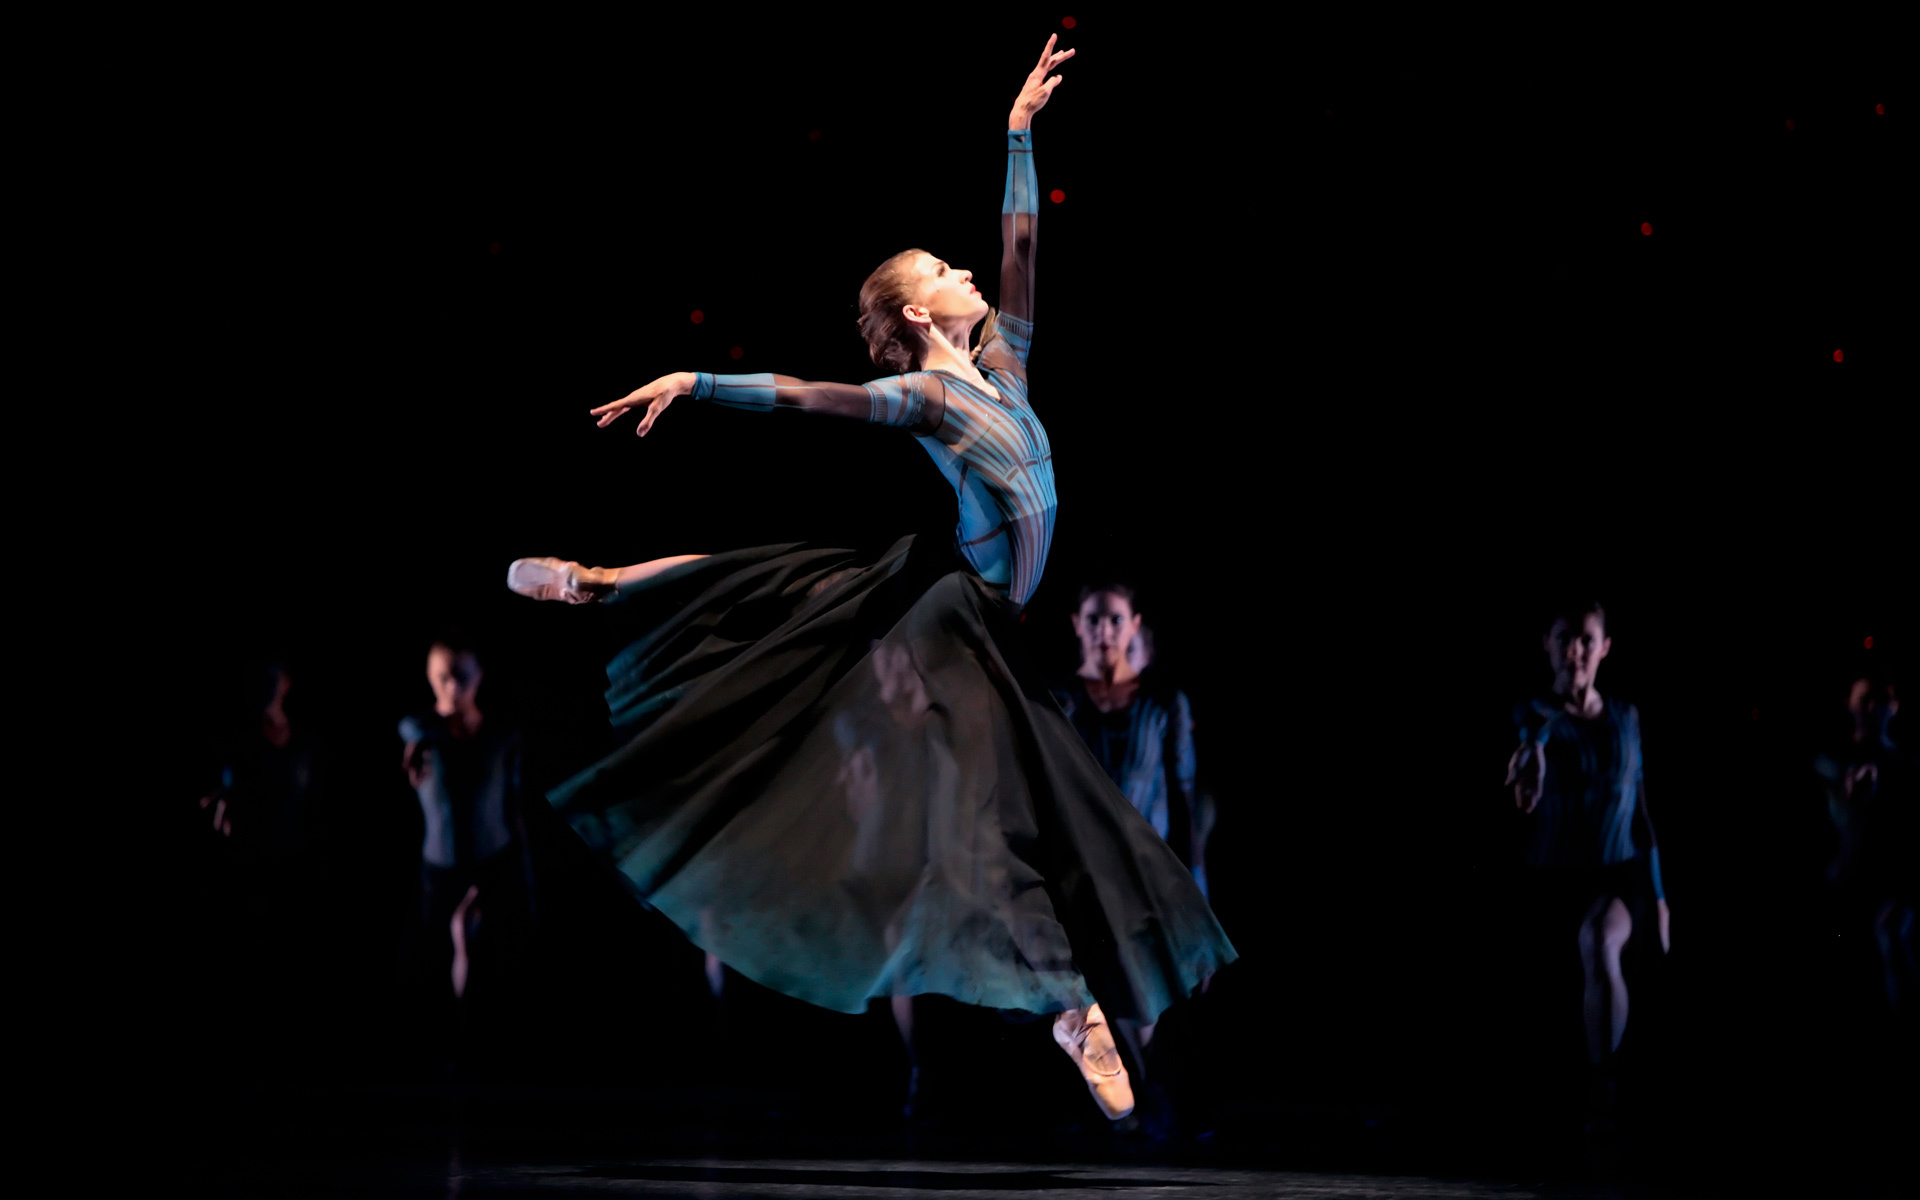 _Ballerina_played_at_the_Theatre_054691_